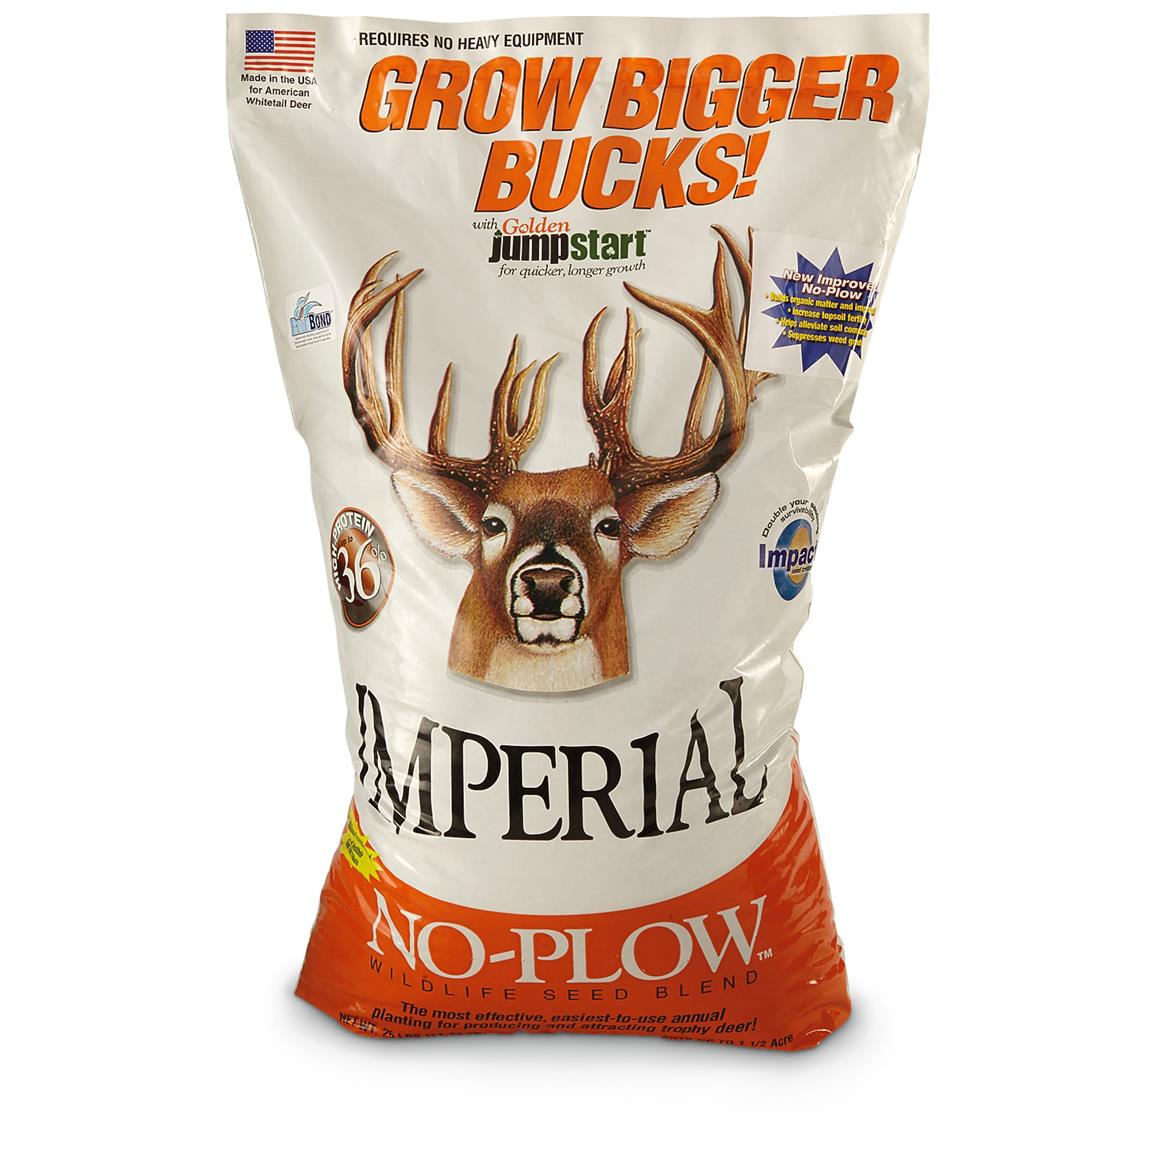 Whitetail Institute No-Plow Seed Blend, 25 lbs.